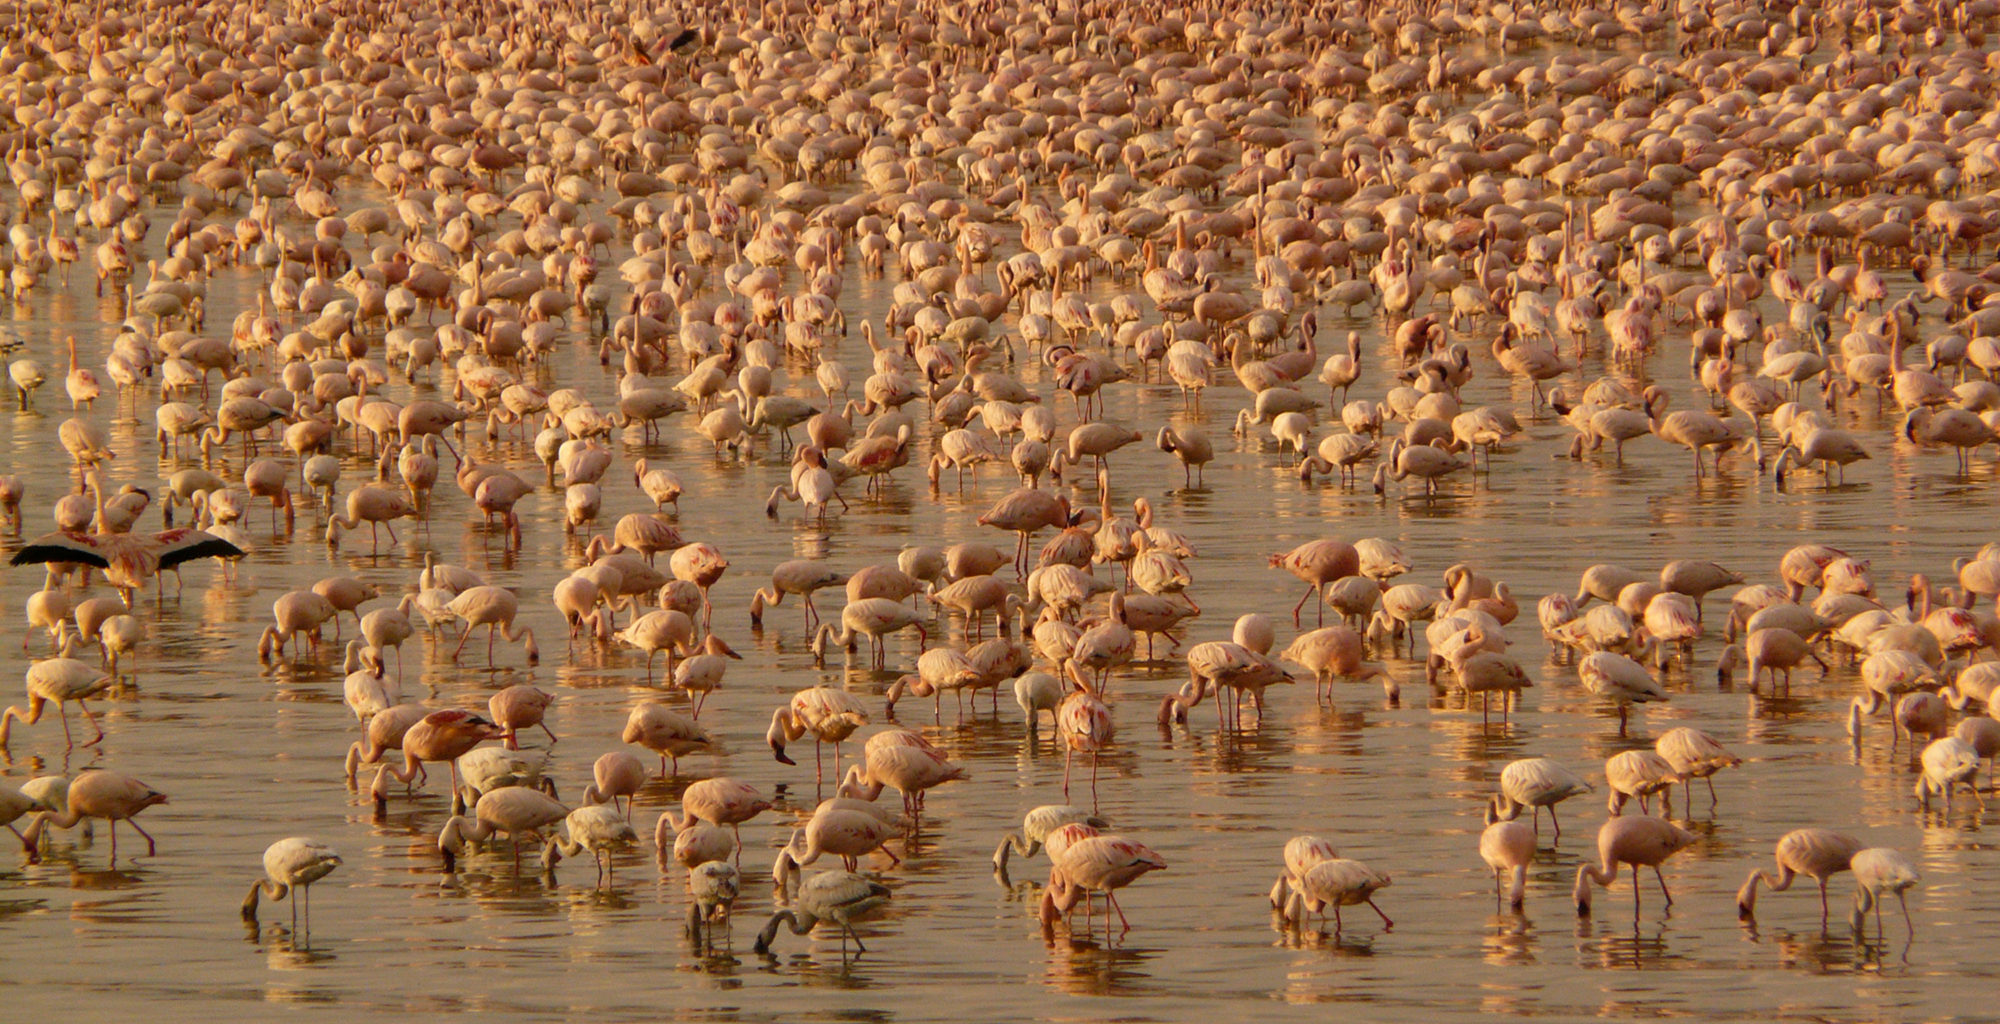 Kenya-Great-Rift-Valley-Wildlife-Flamingo